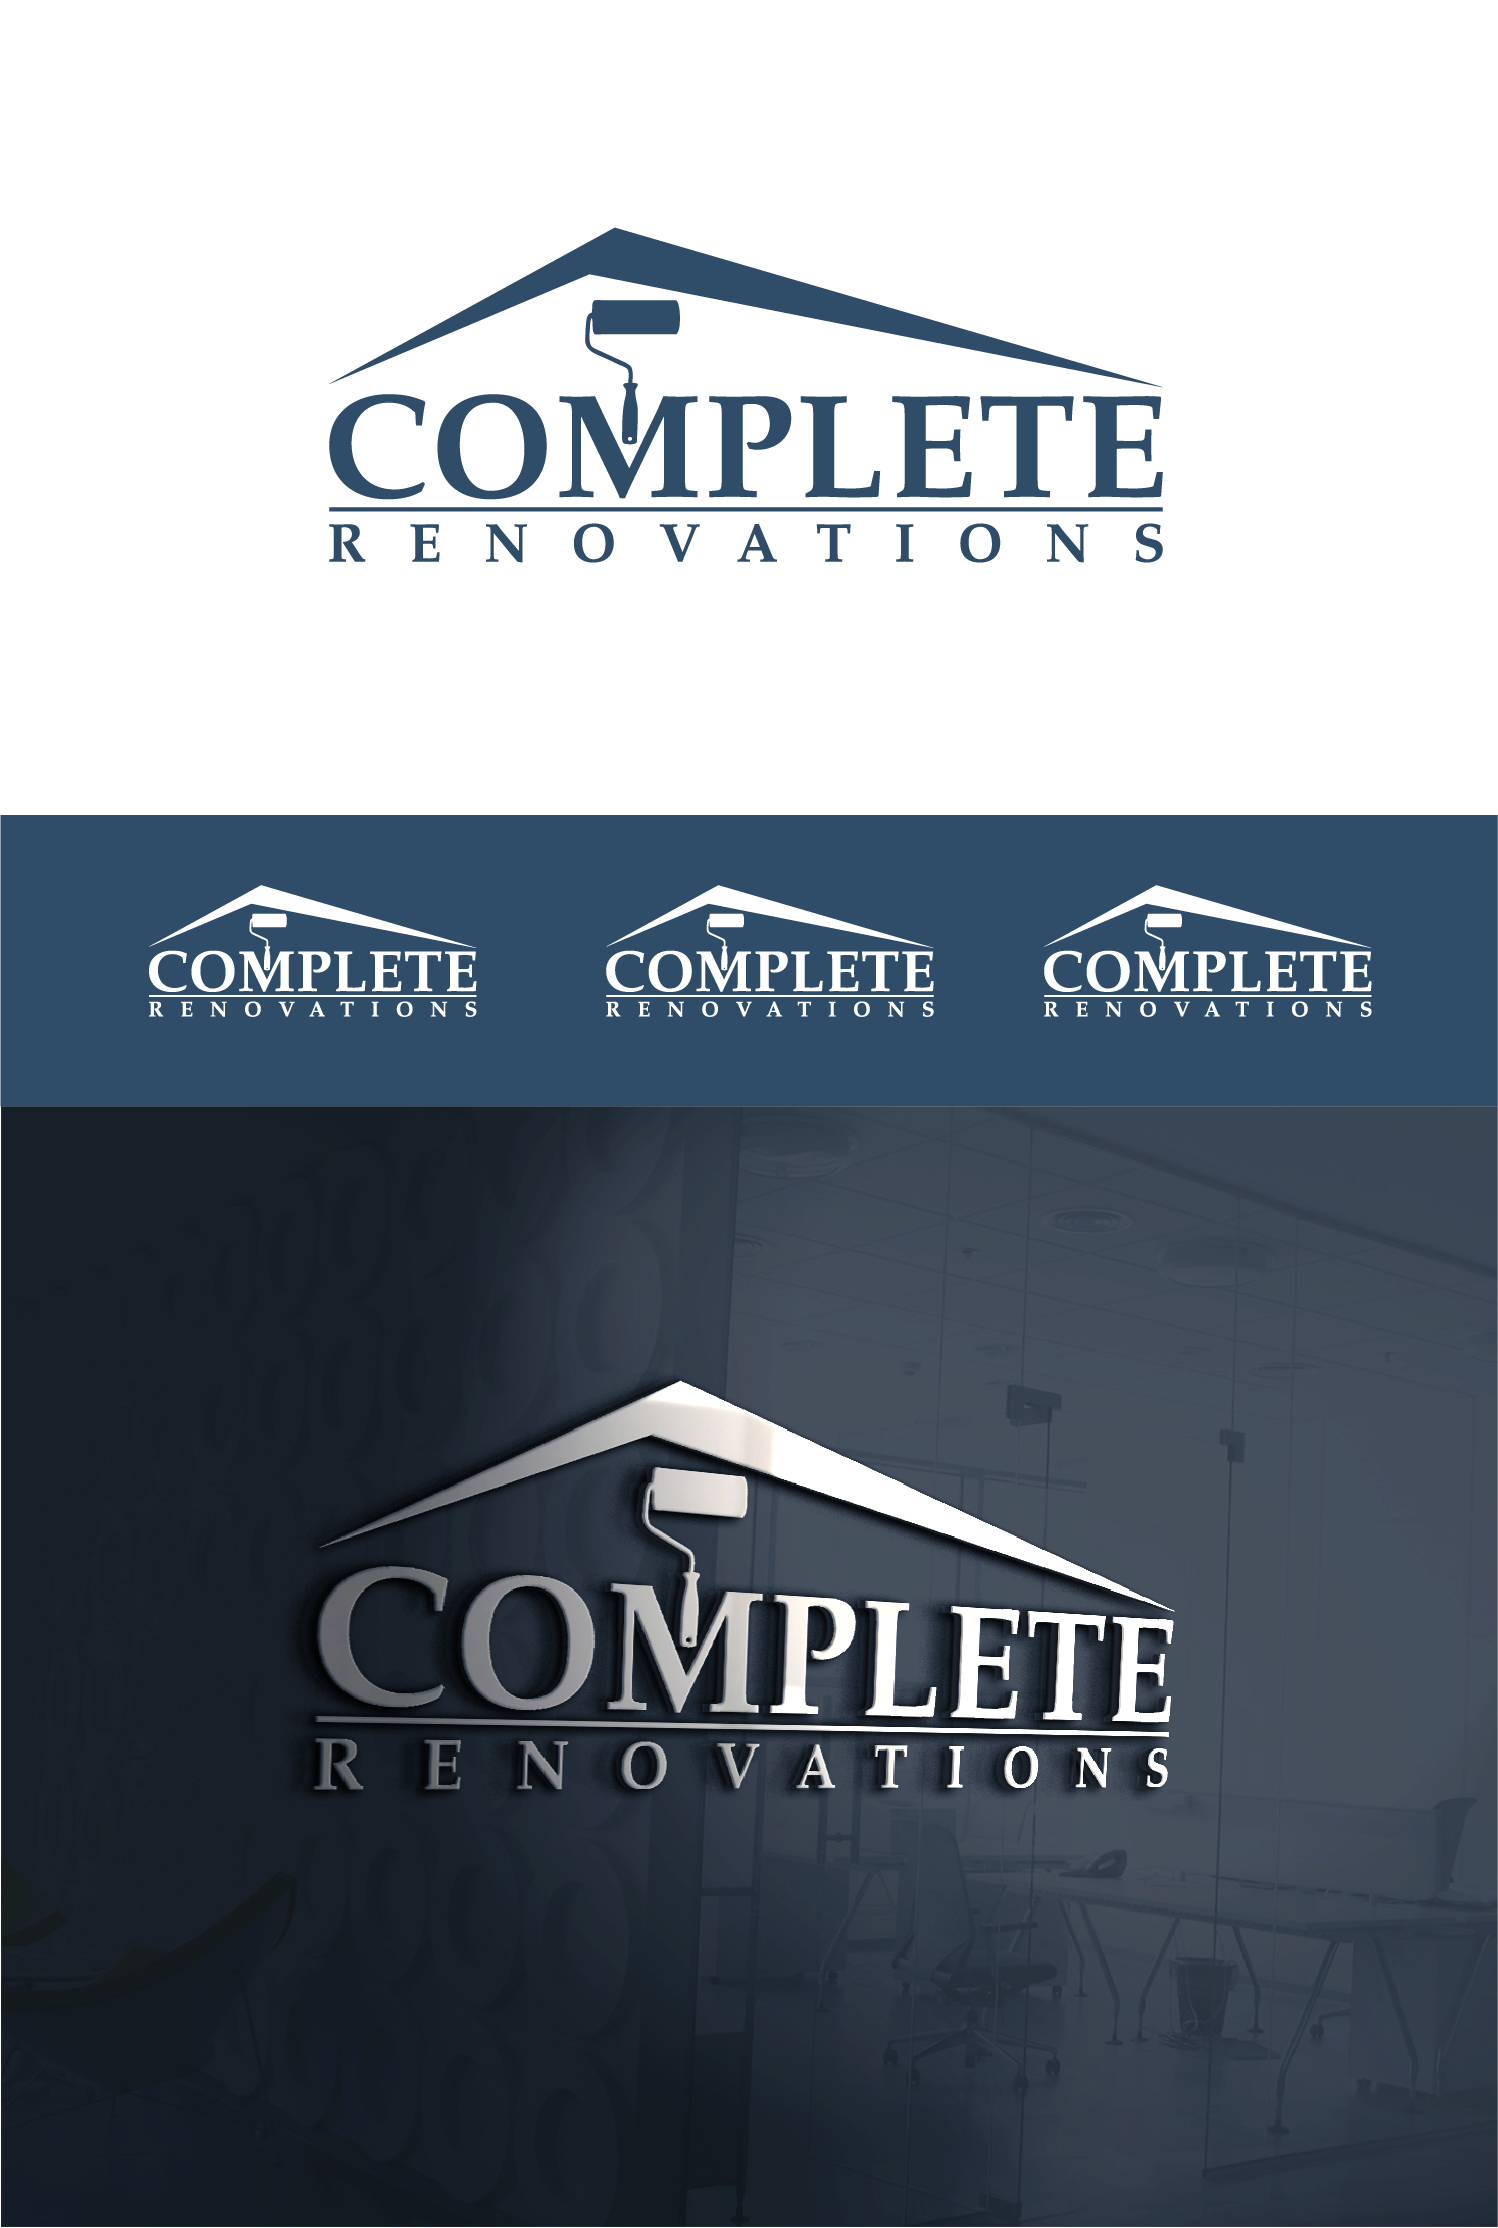 Logo For Home Remodeling Business 14534 Squadhelp